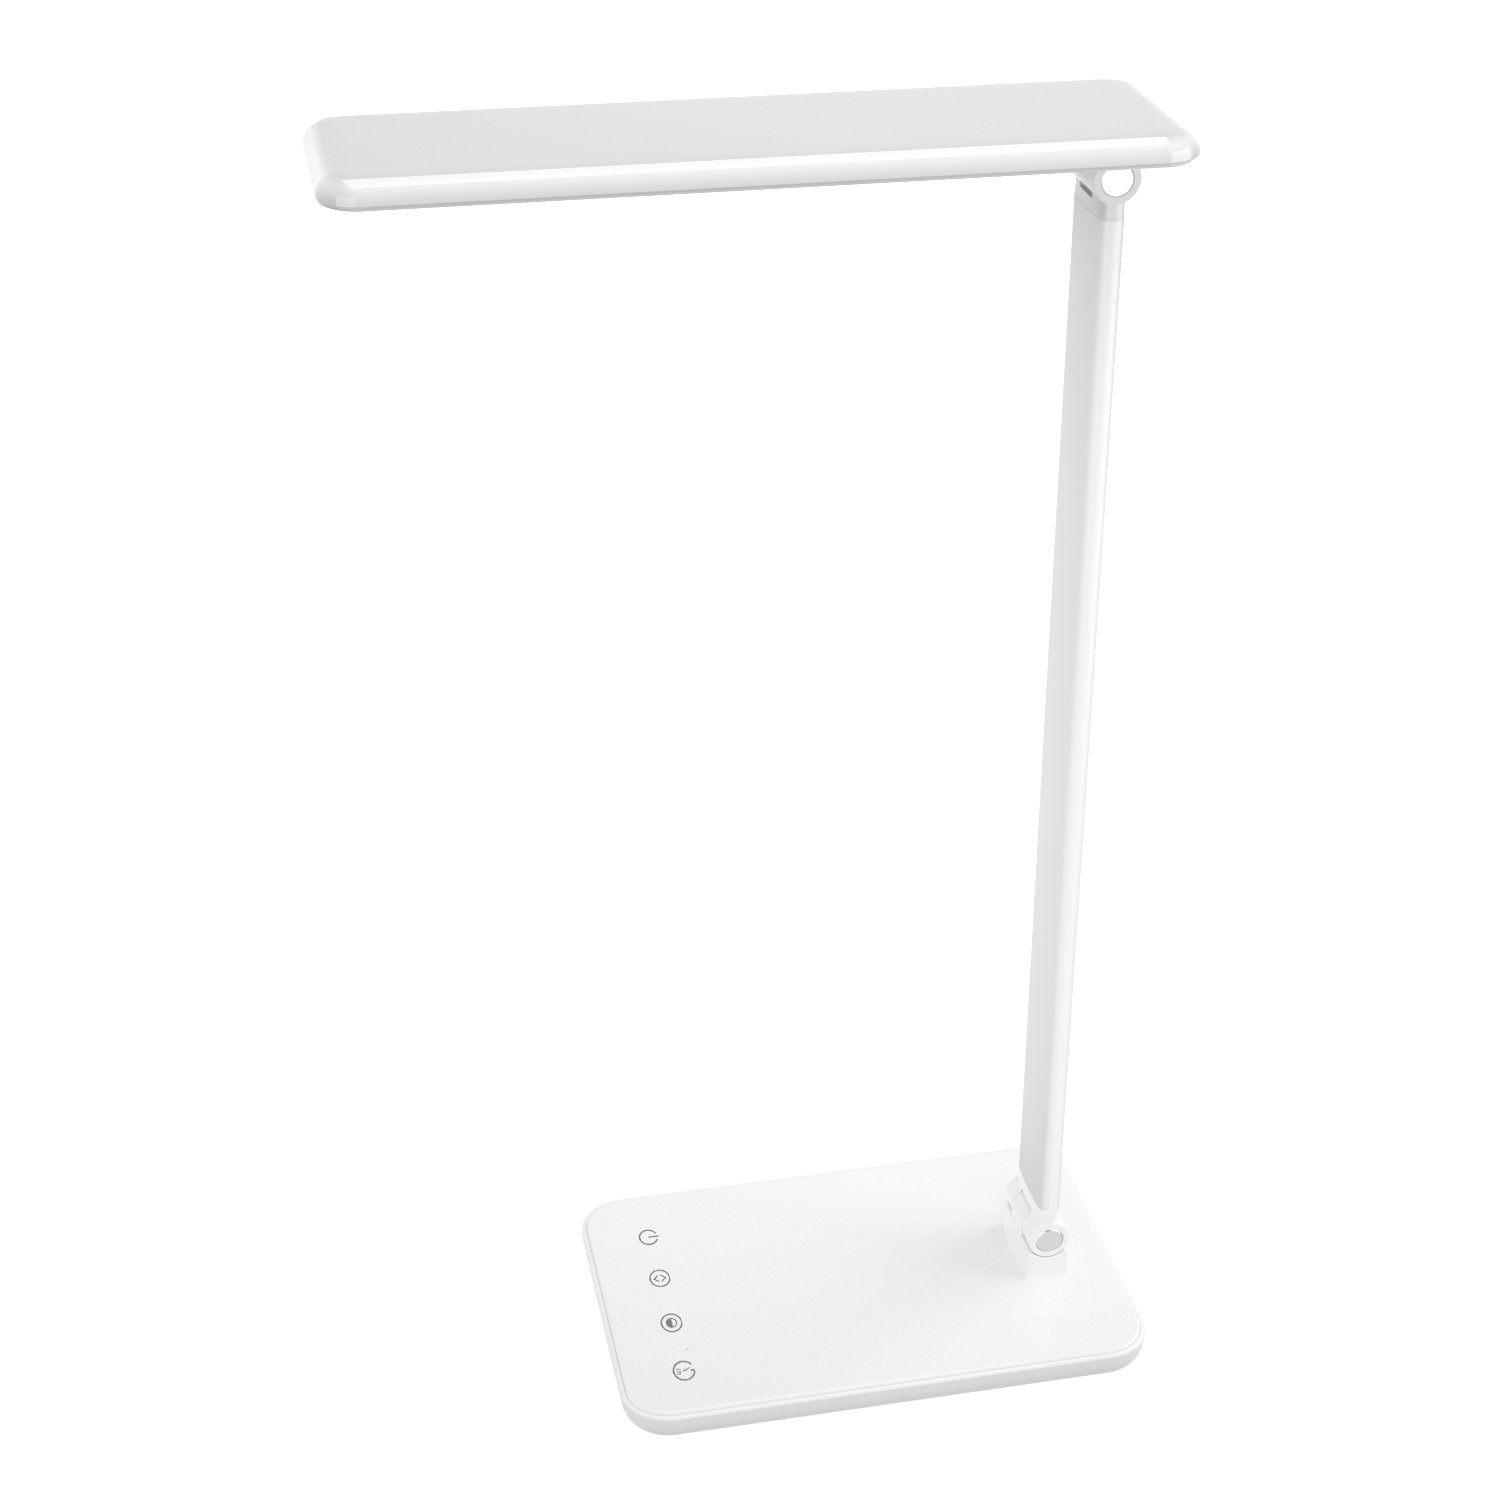 MoKo Dimmable LED Desk Lamp with Touch-Sensitive Control - Top Modern Dimmable Table Lamp, 1 hour auto timer, 40000 hours lifespan